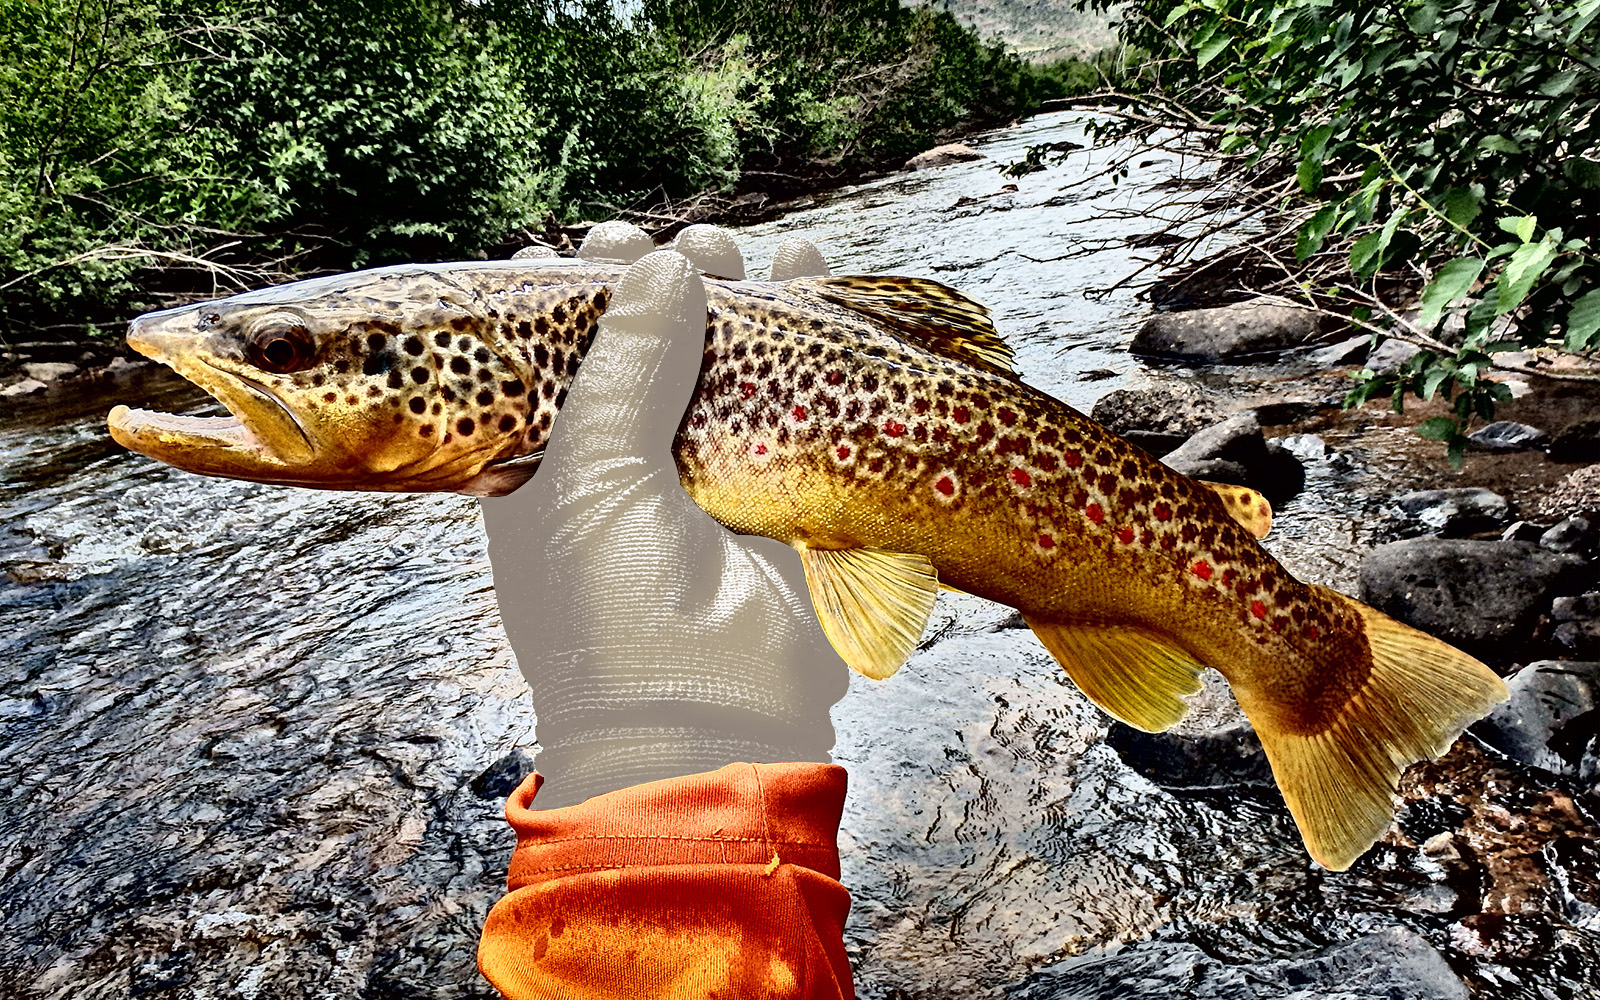 A gloved hand holds a live spotted fish caught from a stream in the background